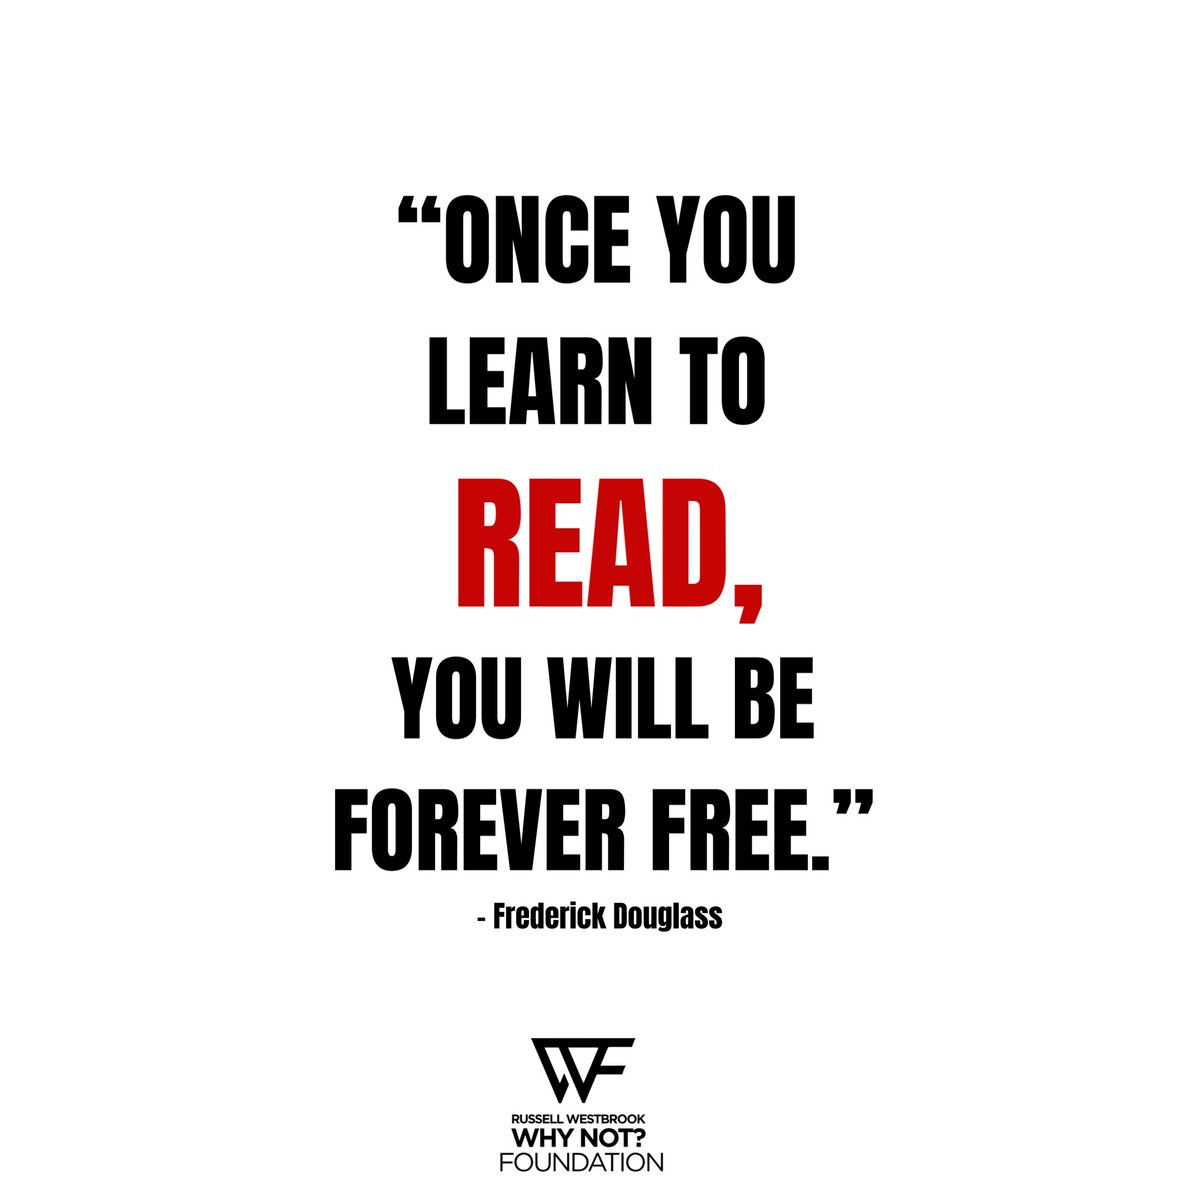 """""""Once you learn to read, you will be forever free."""" - Frederick Douglass  Give back by donating old books to your local community centers, thrift stores, or school libraries. #WhyNot https://t.co/zf0iwN7Mi0"""